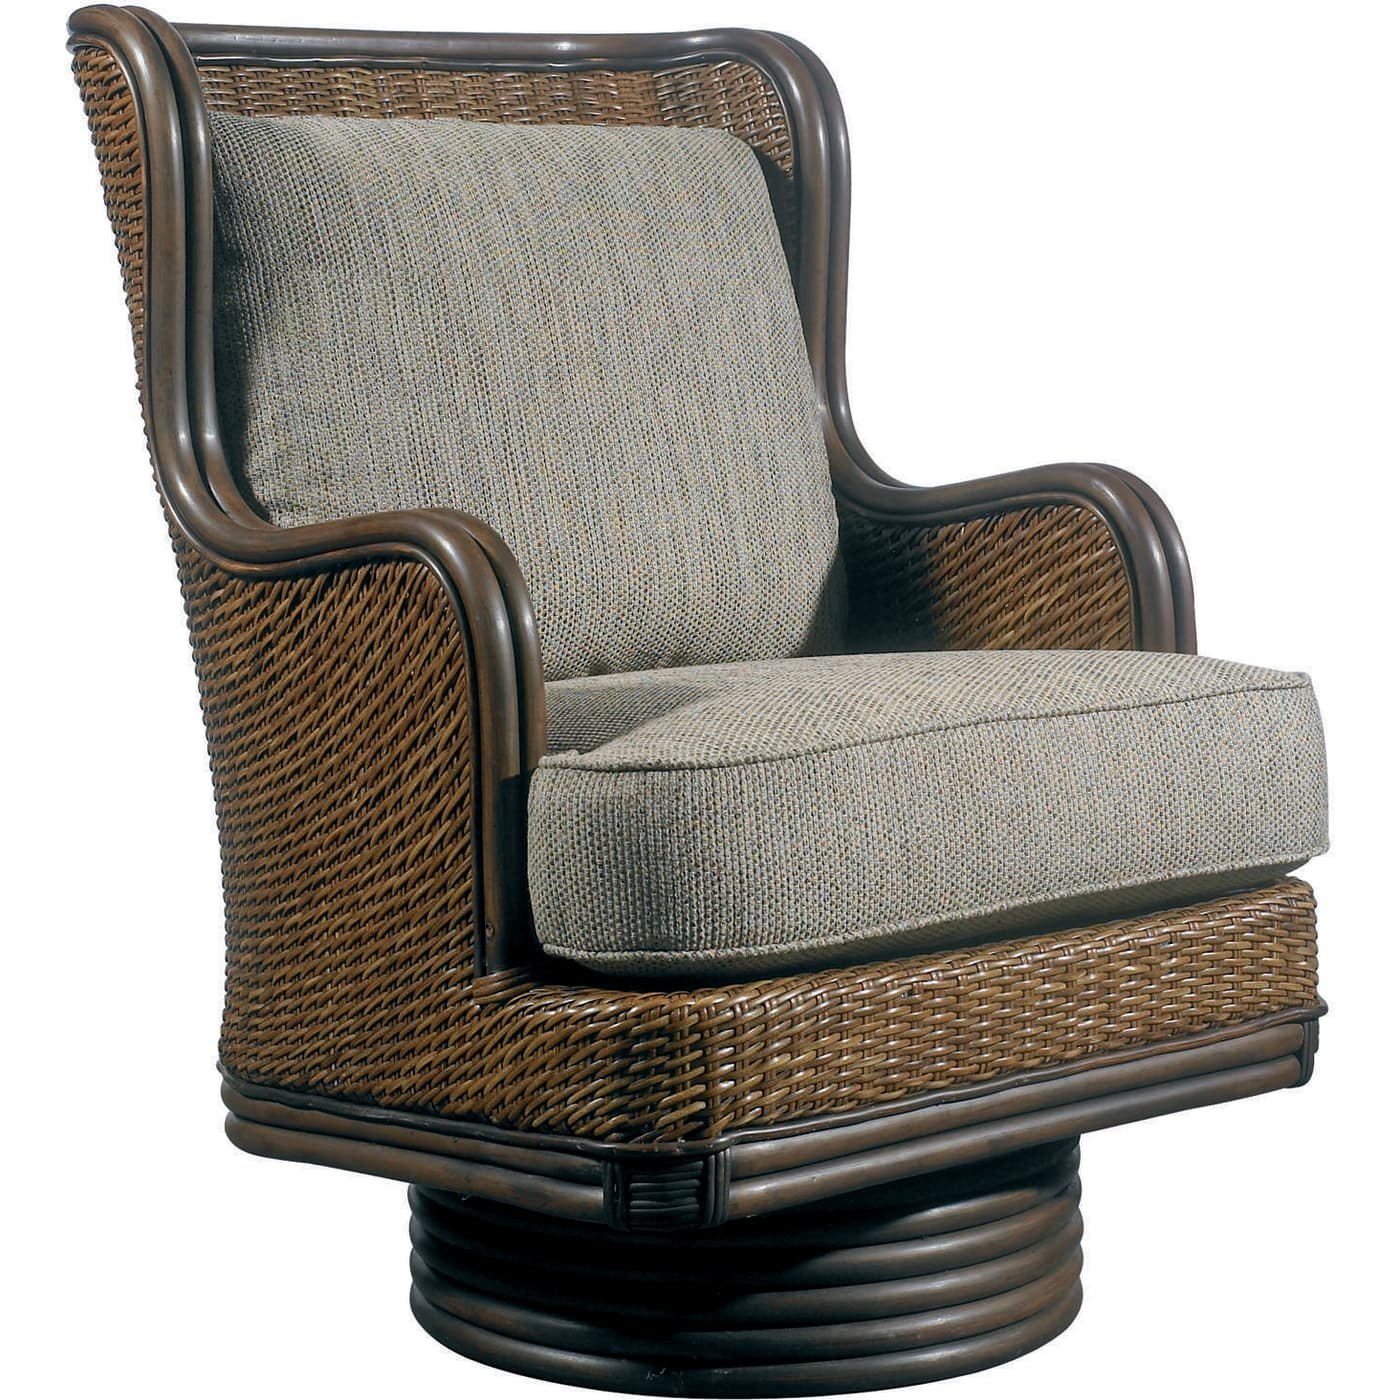 Palm Beach Natural Antique Outdoor Lounge Chair - Padma's Plantation Palm Beach Natural Antique Outdoor Lounge Chair